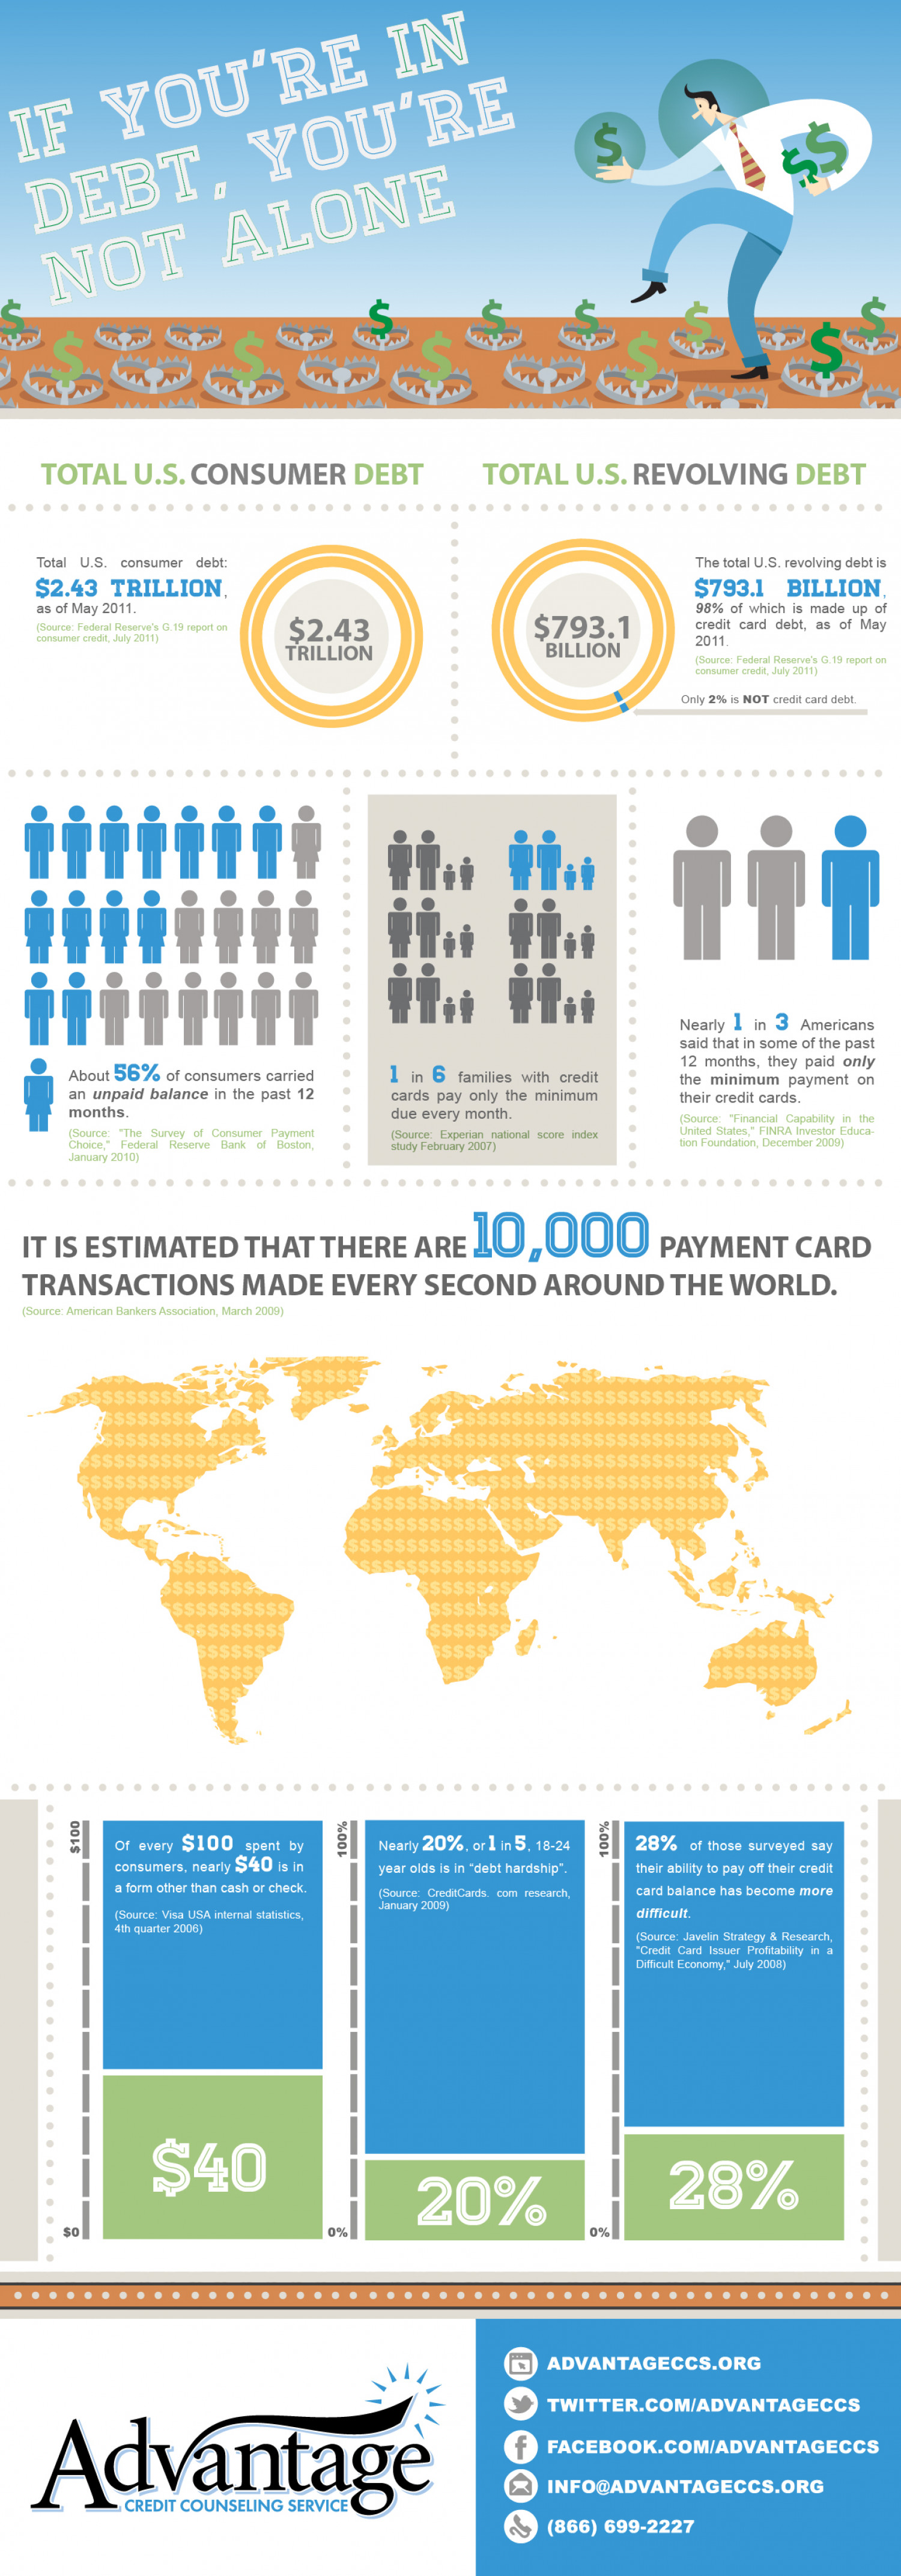 If your're in Debt, you're not alone Infographic